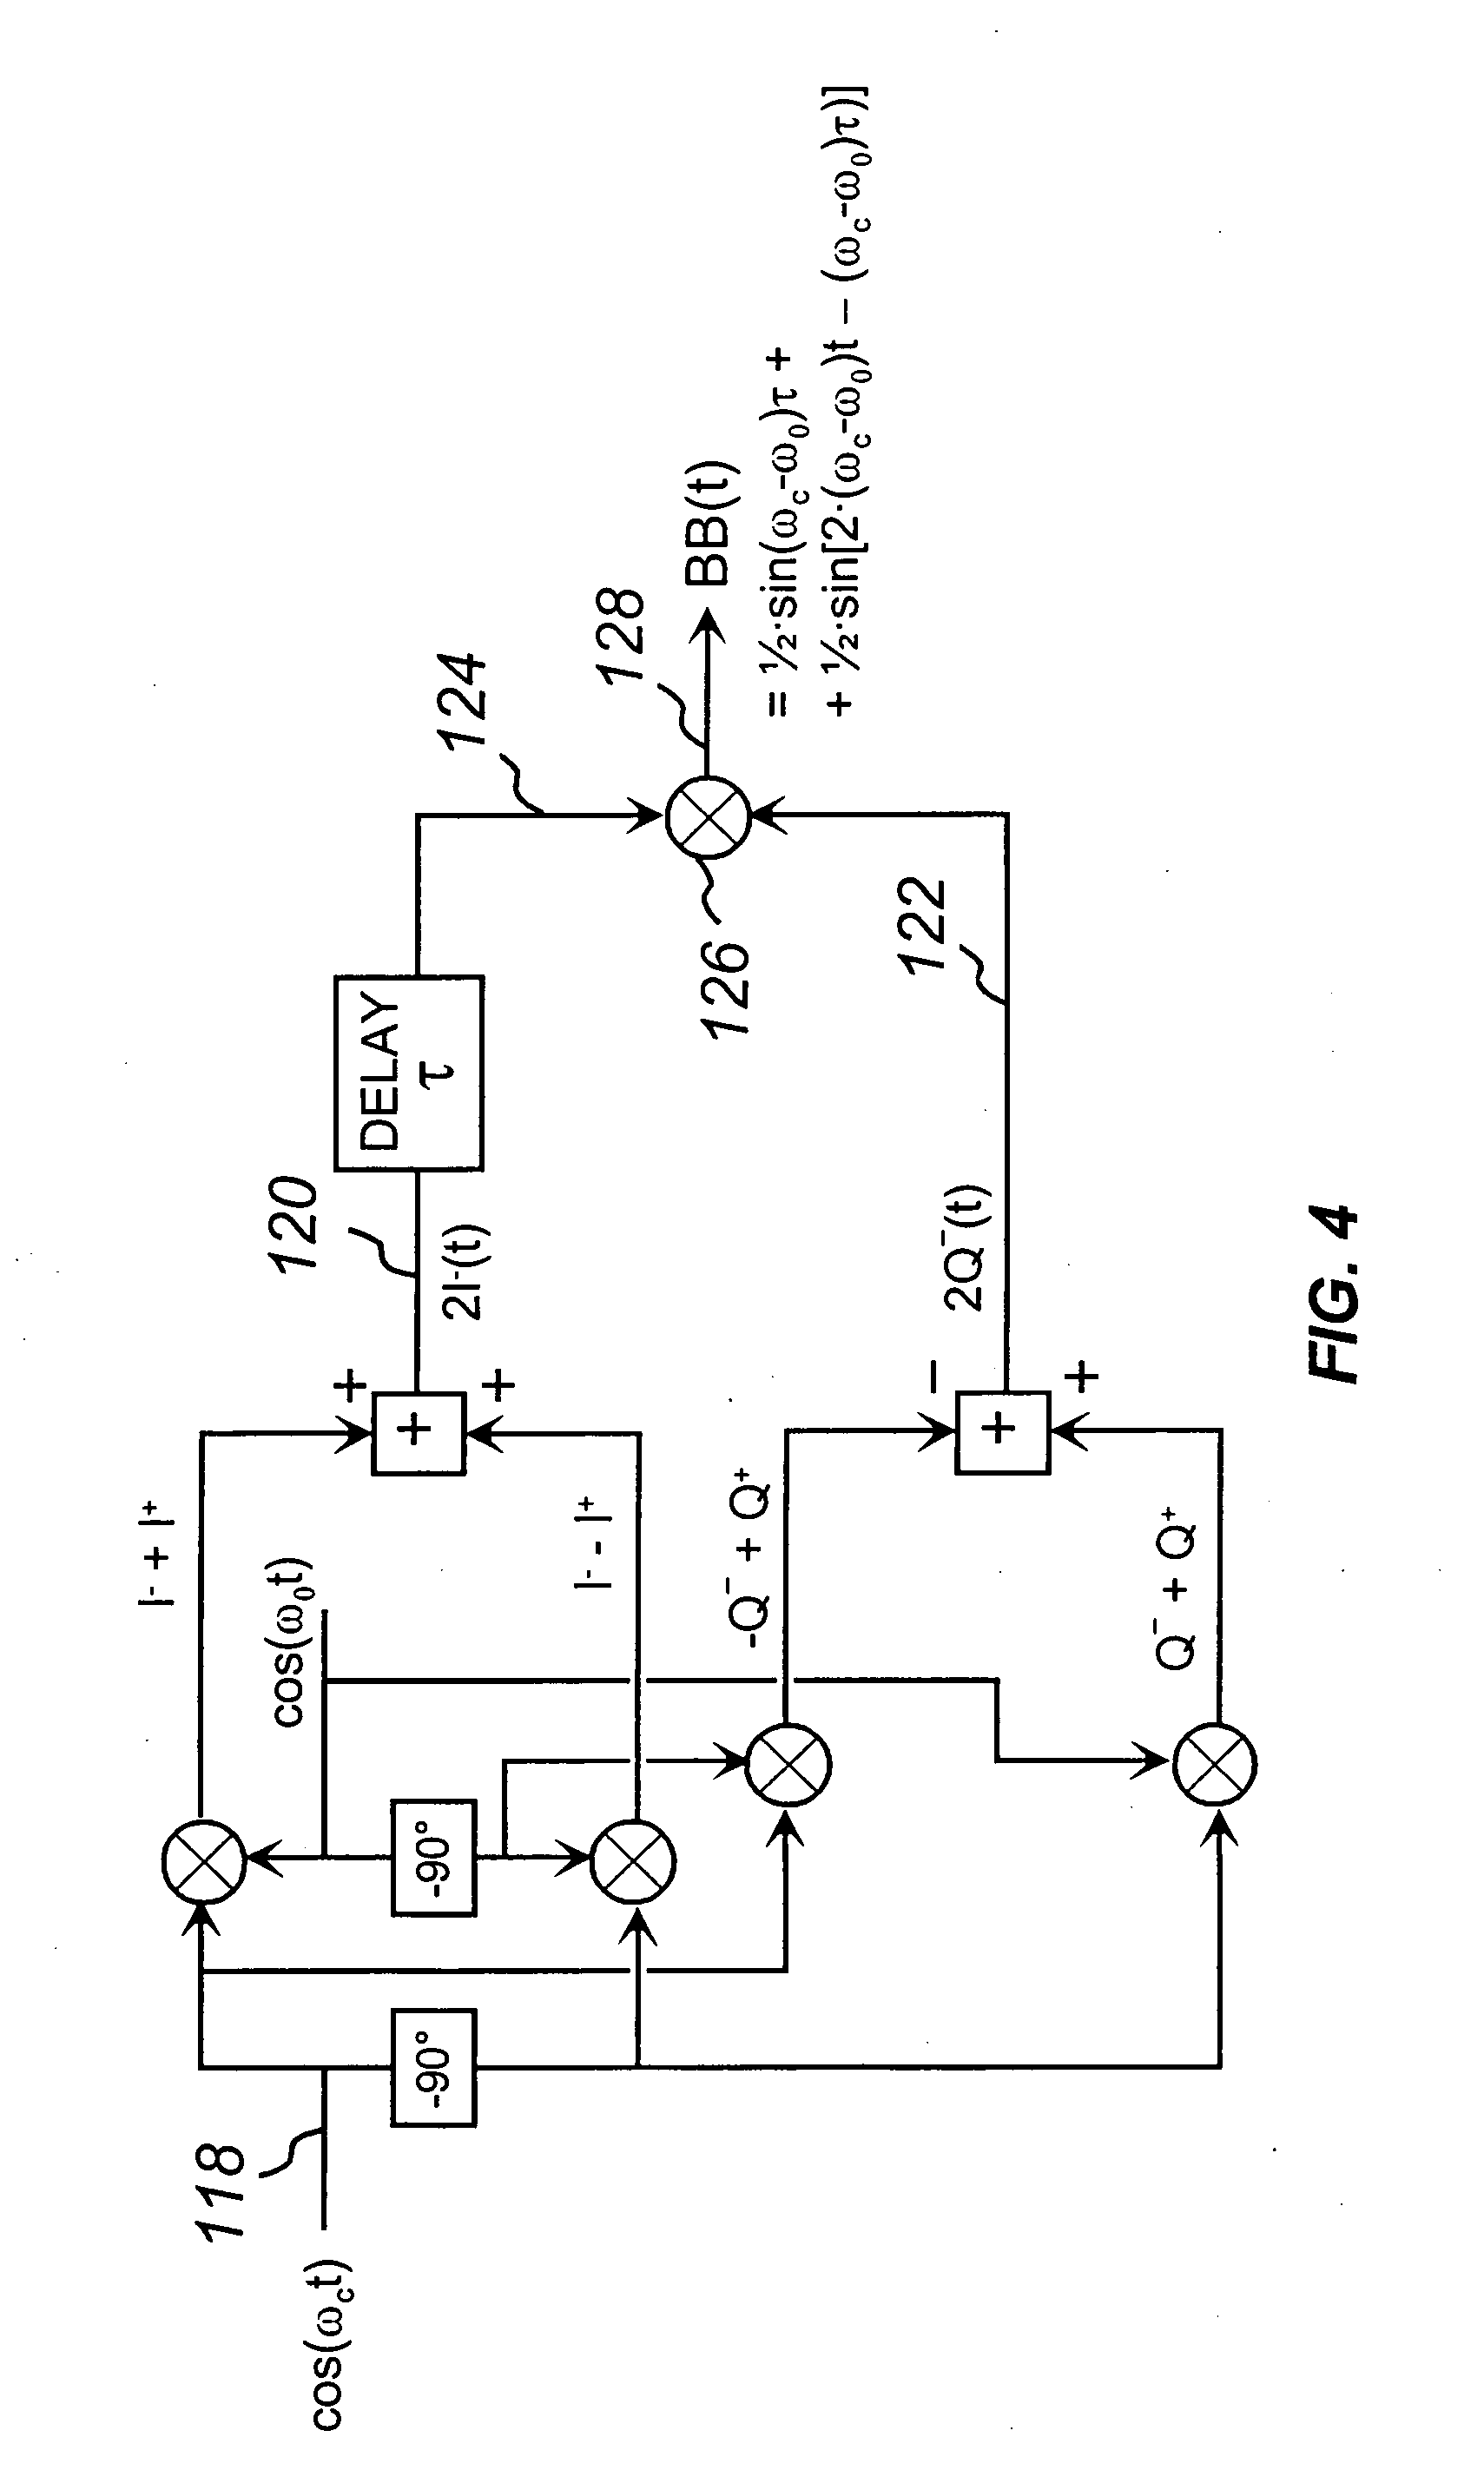 Lock In Amplifier Beats Desired Weak Signal 40 Db Below Input Noise Patente Us20060057996 High Frequency Low Phase Patent Drawing